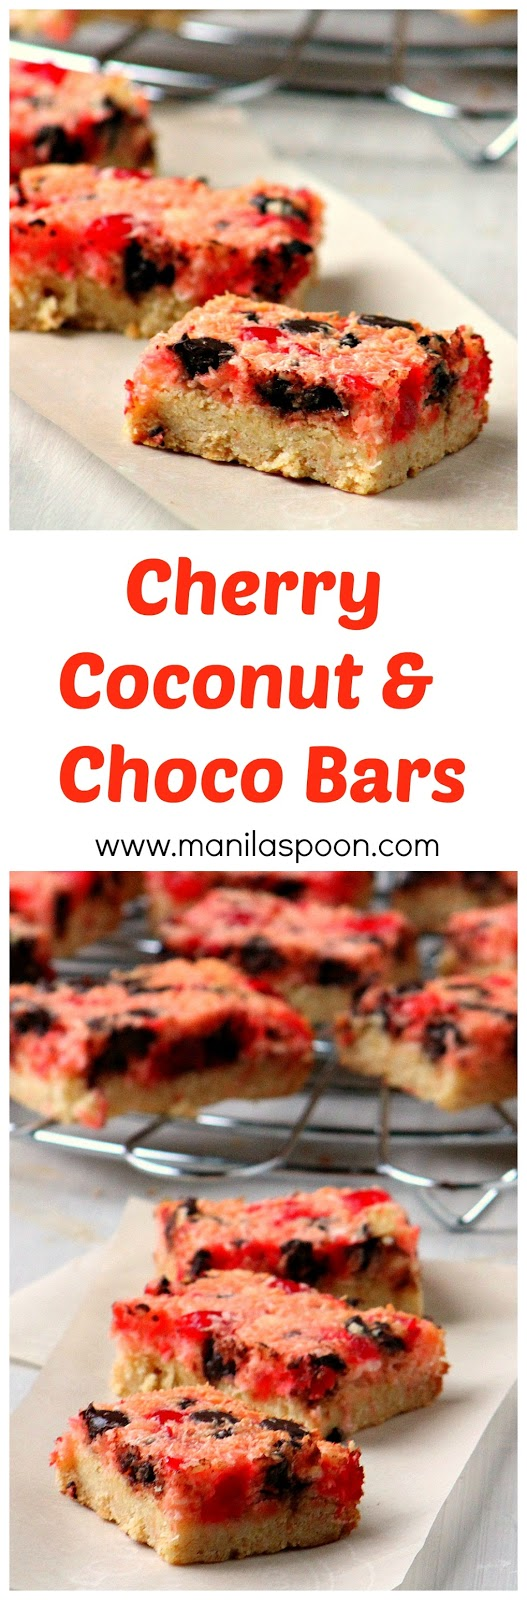 Cherries, coconut and chocolate plus cream cheese all combine to make these bars totally scrumptious!